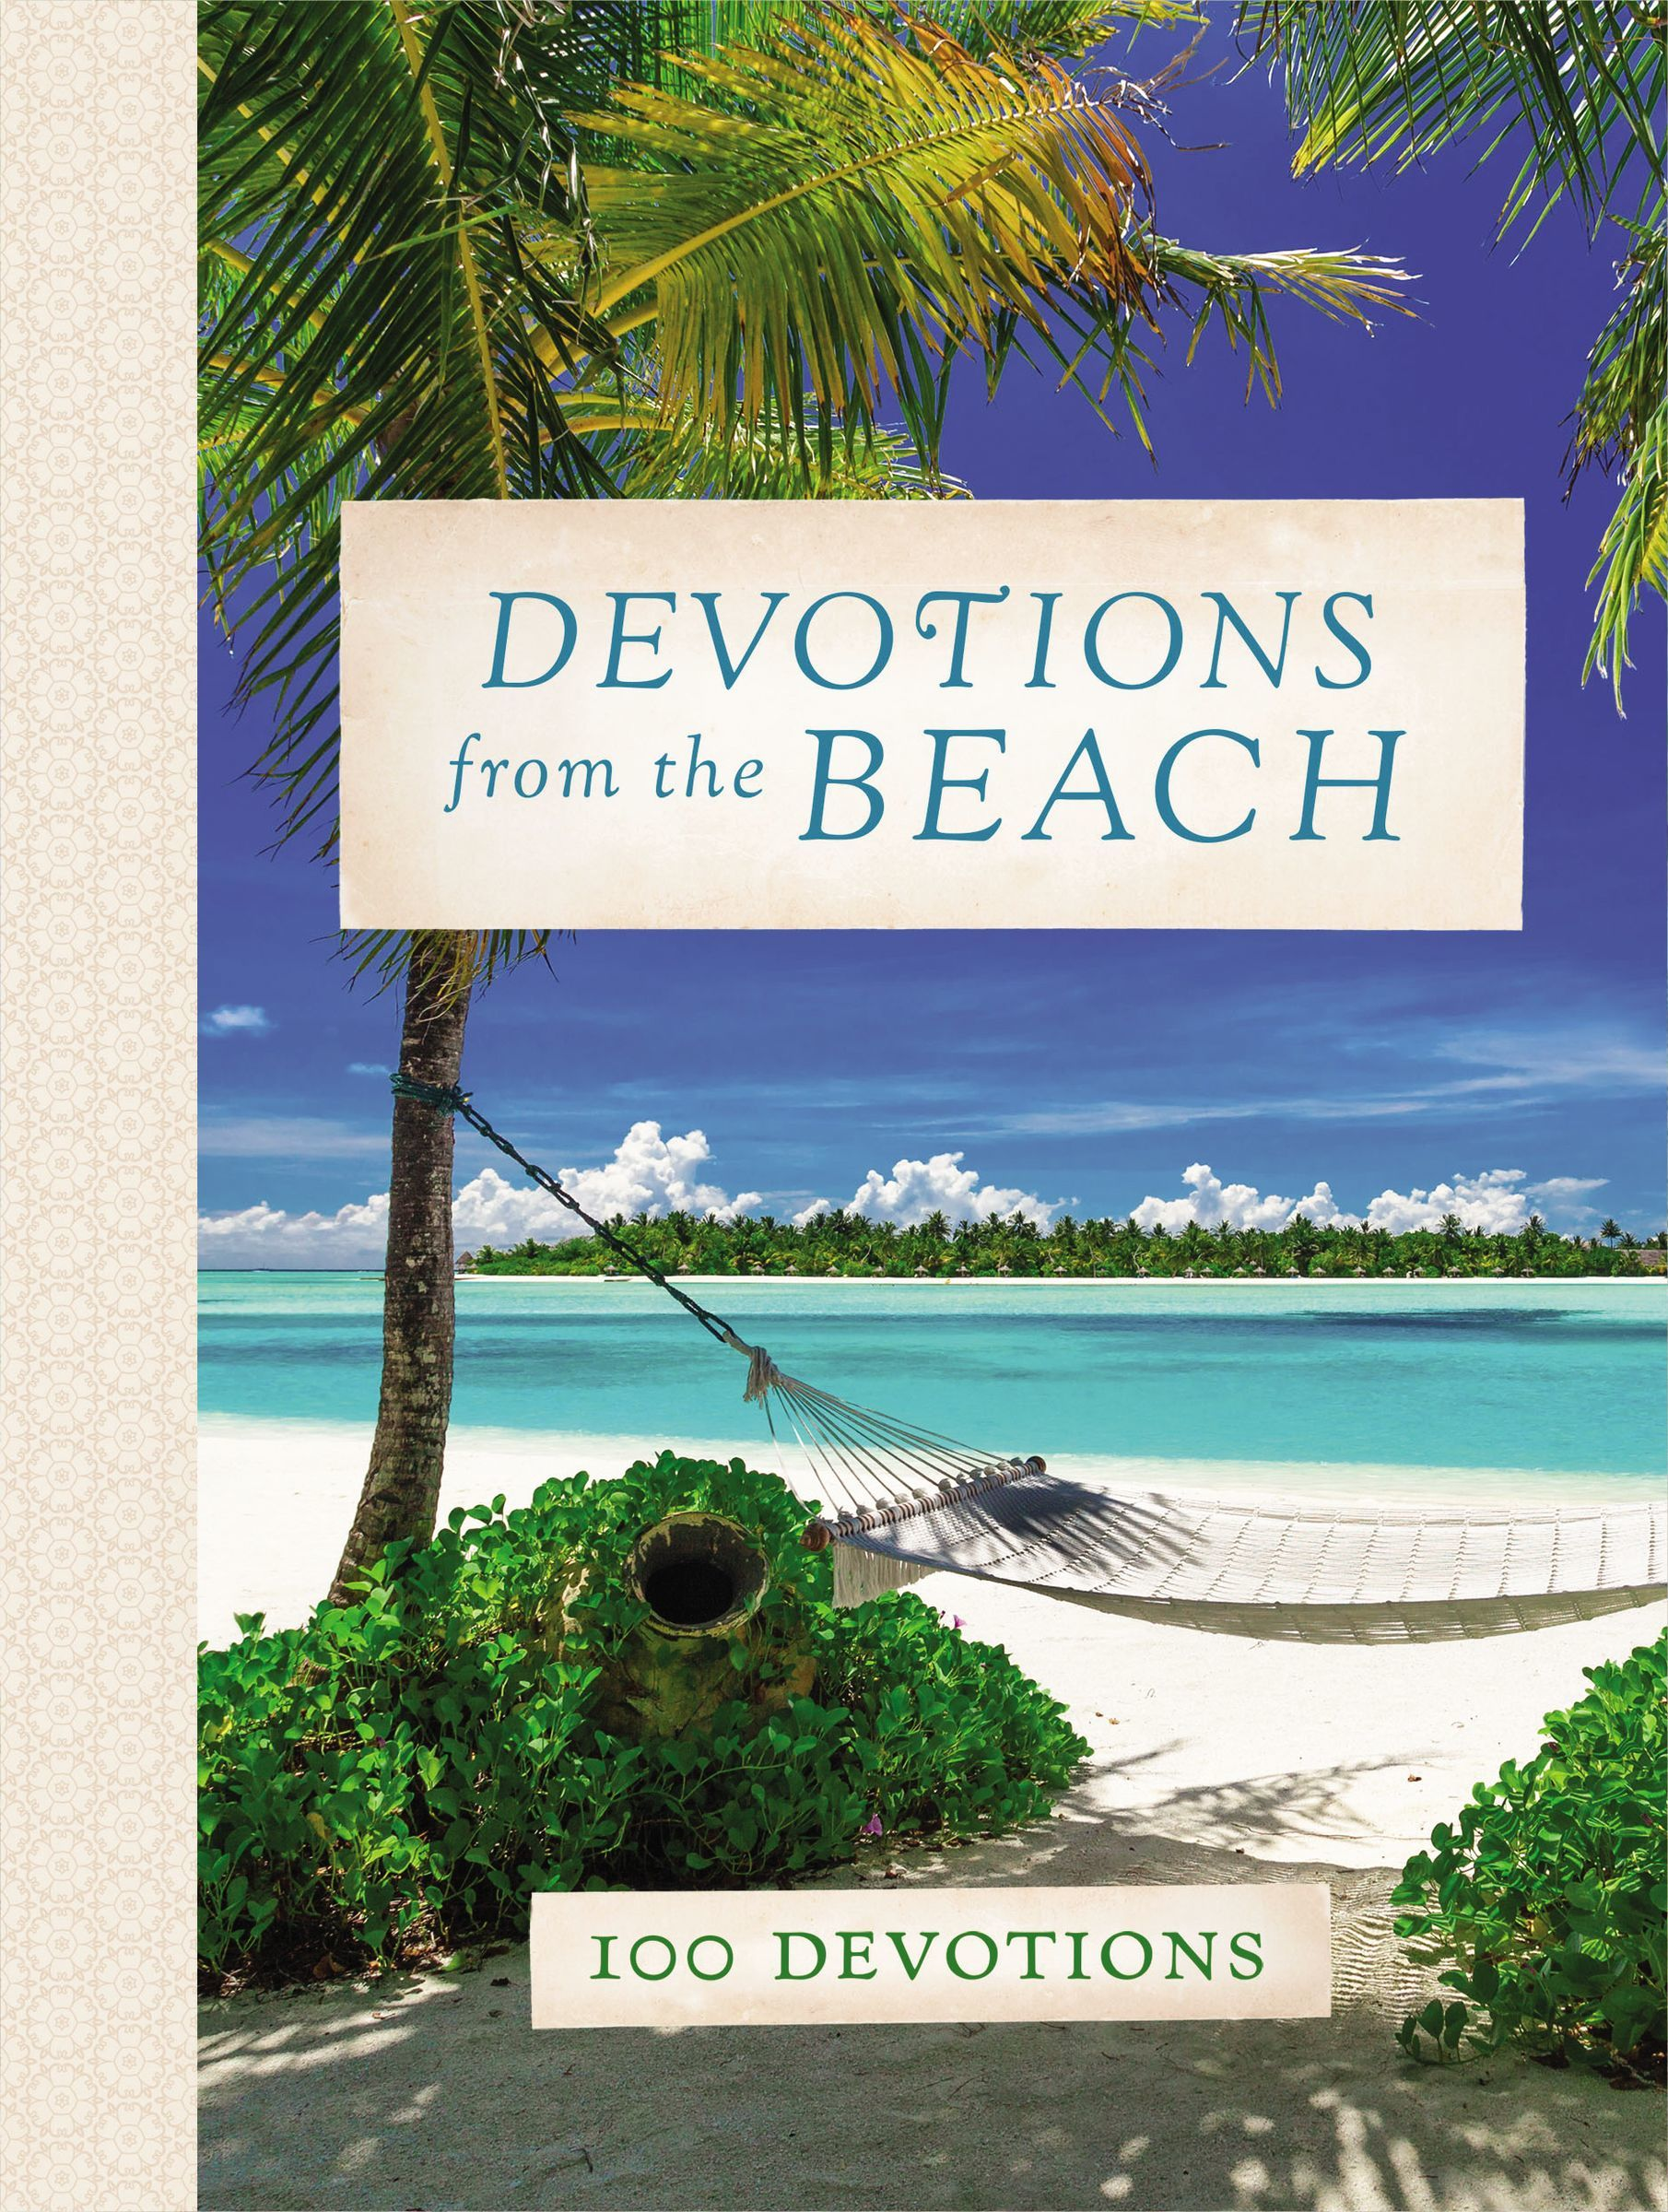 Devotions from the Beach